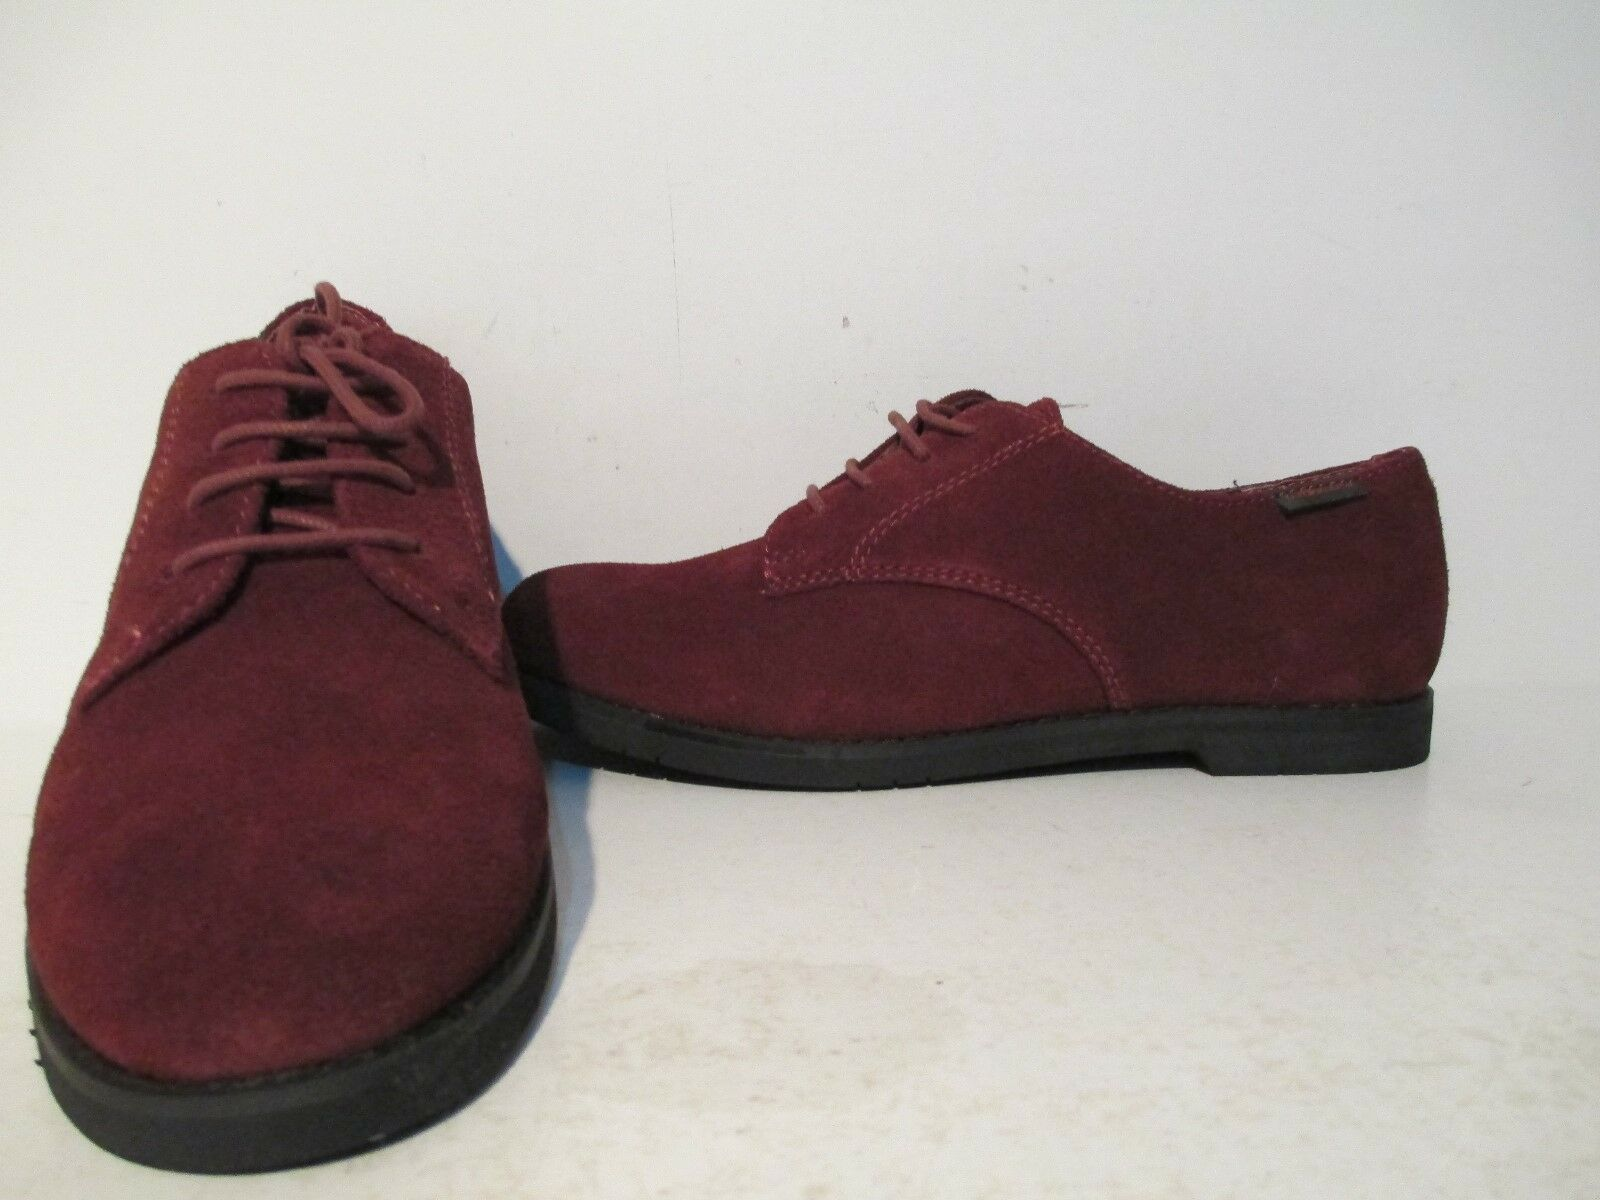 Bass Donna Ely 2 Suede Casual Lace Up Oxford Oxford Up 8.5 Scarpe marronestone   fd4d68